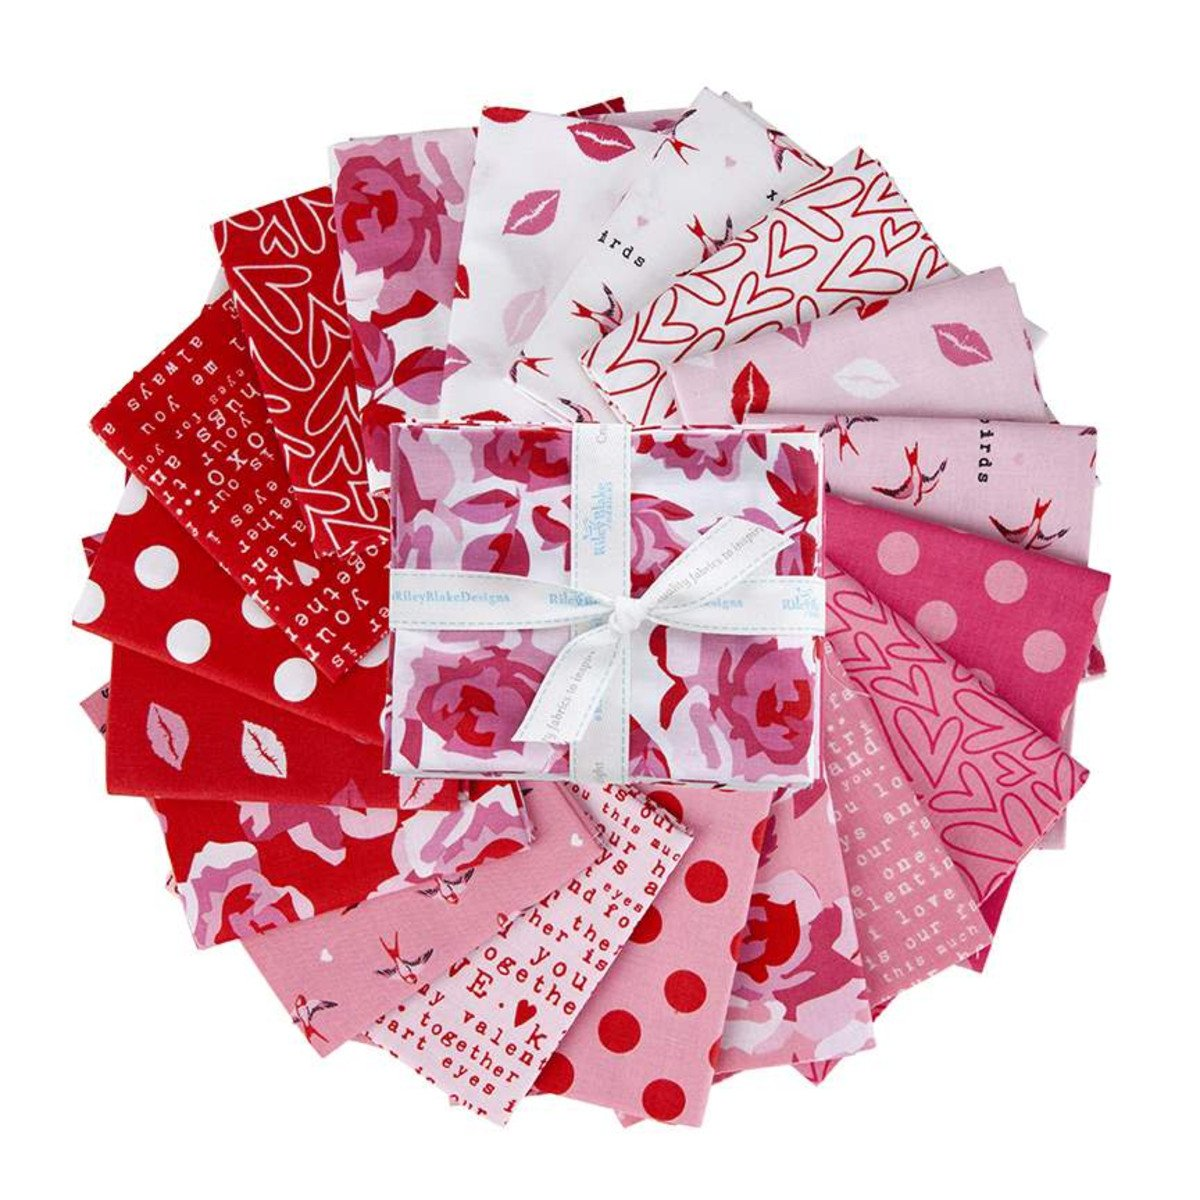 Sending Love Fat Quarter, 18pcs